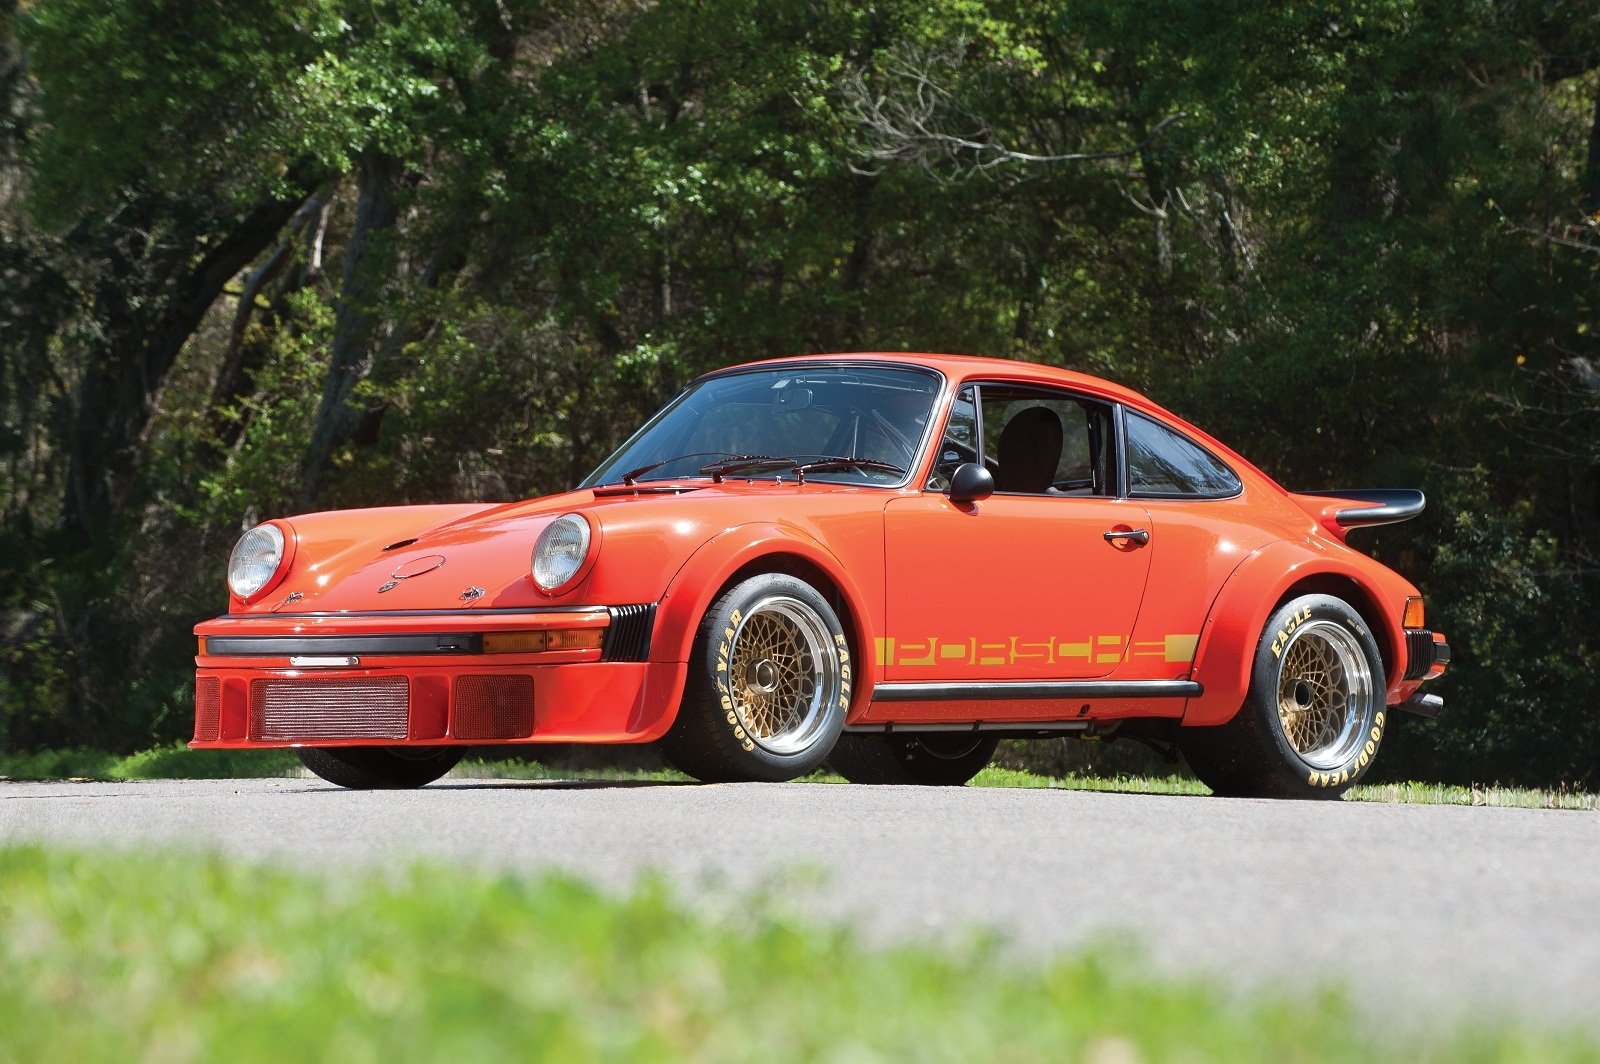 Auction Cars For Sale >> 1976 Porsche 934 Turbo RSR FIA GR/4 Review - Top Speed